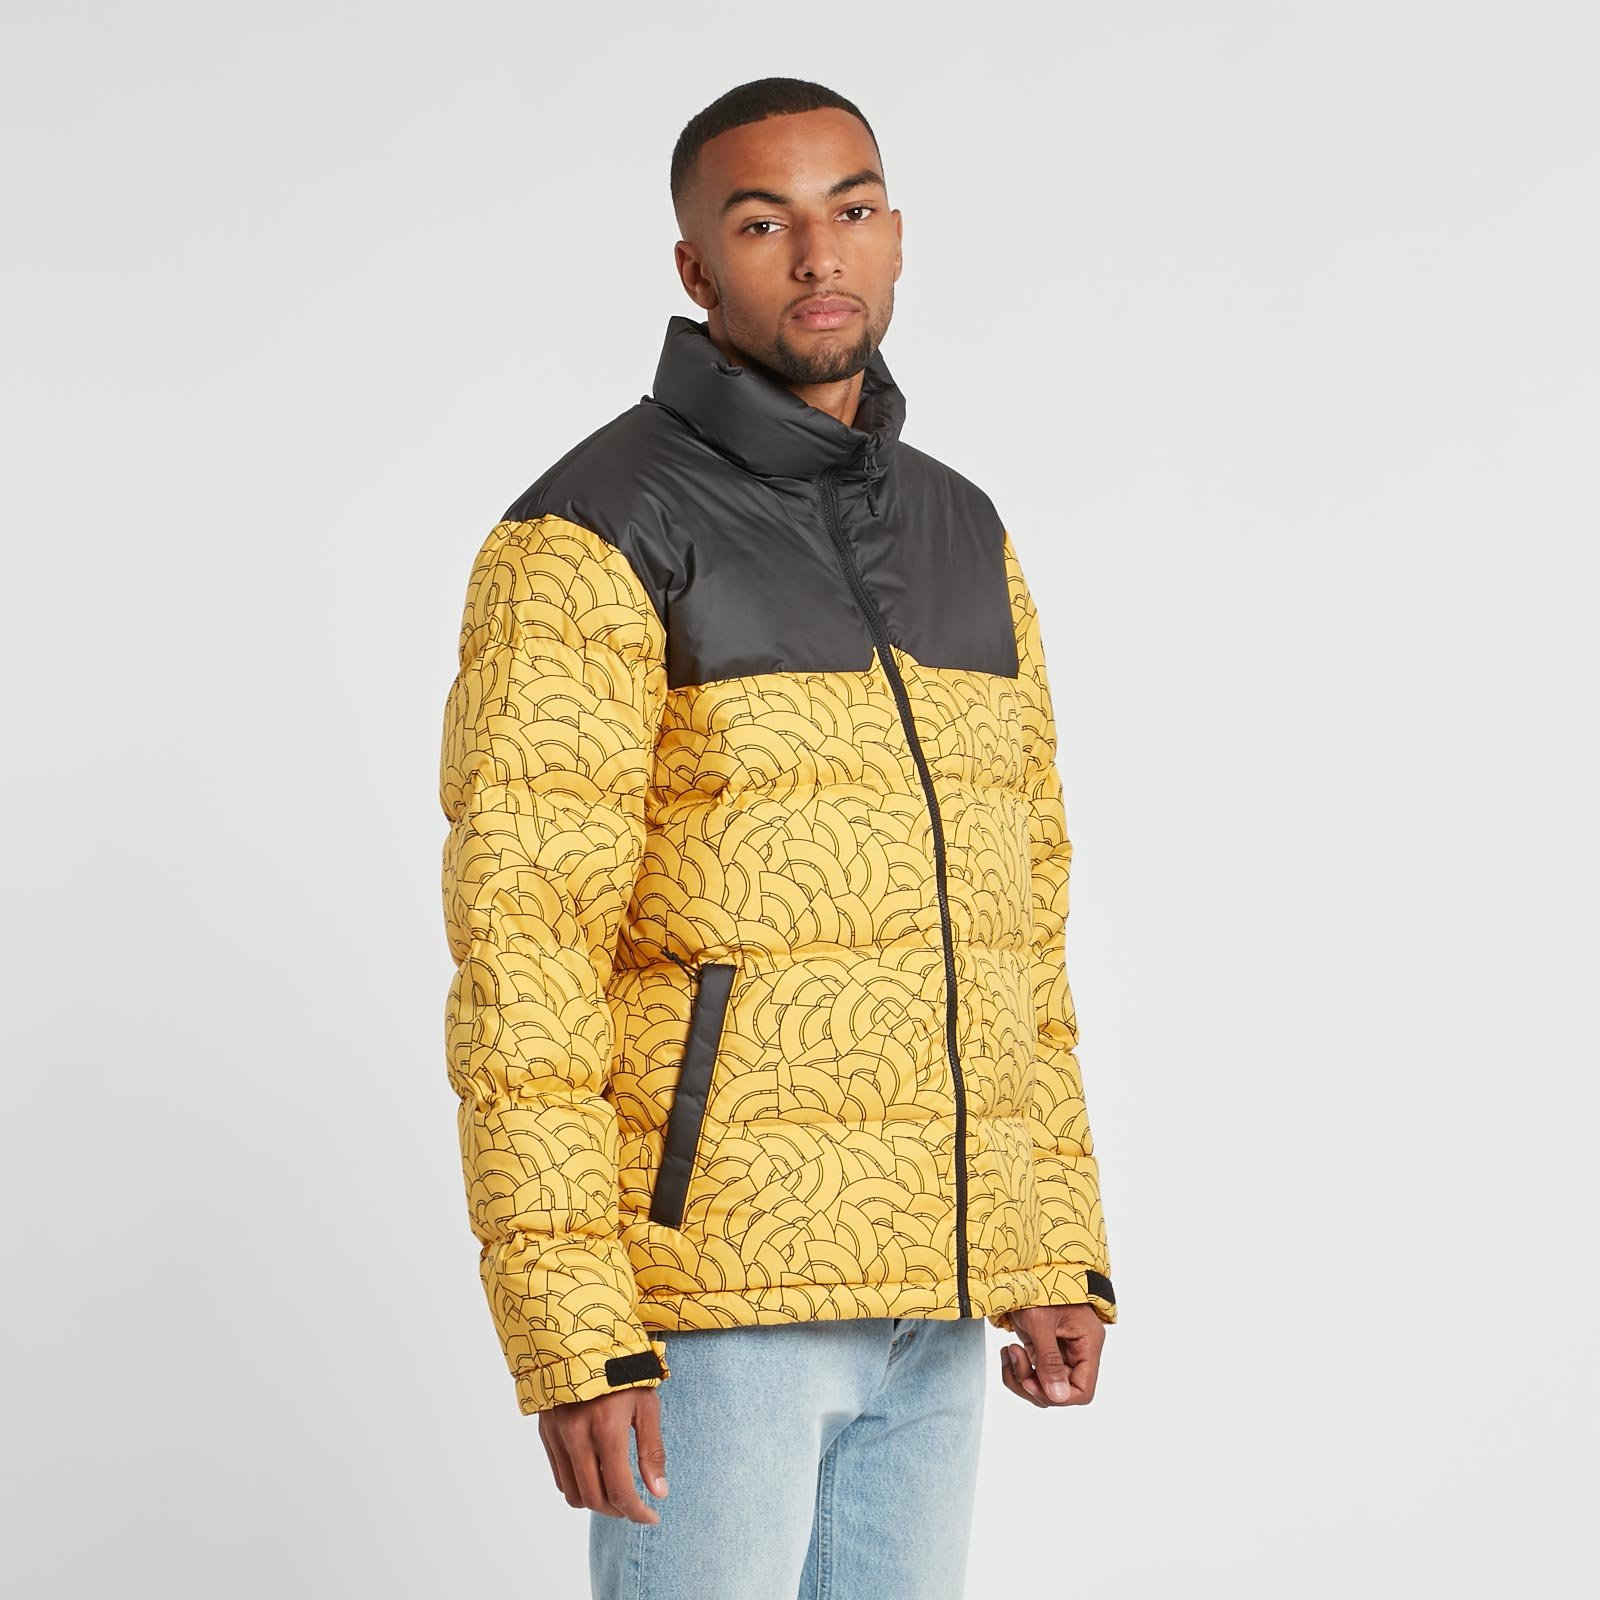 pasta Conciso implicazioni  The North Face M 1992 Nuptse Jacket - T92zwewwr - Sneakersnstuff | sneakers  & streetwear online since 1999